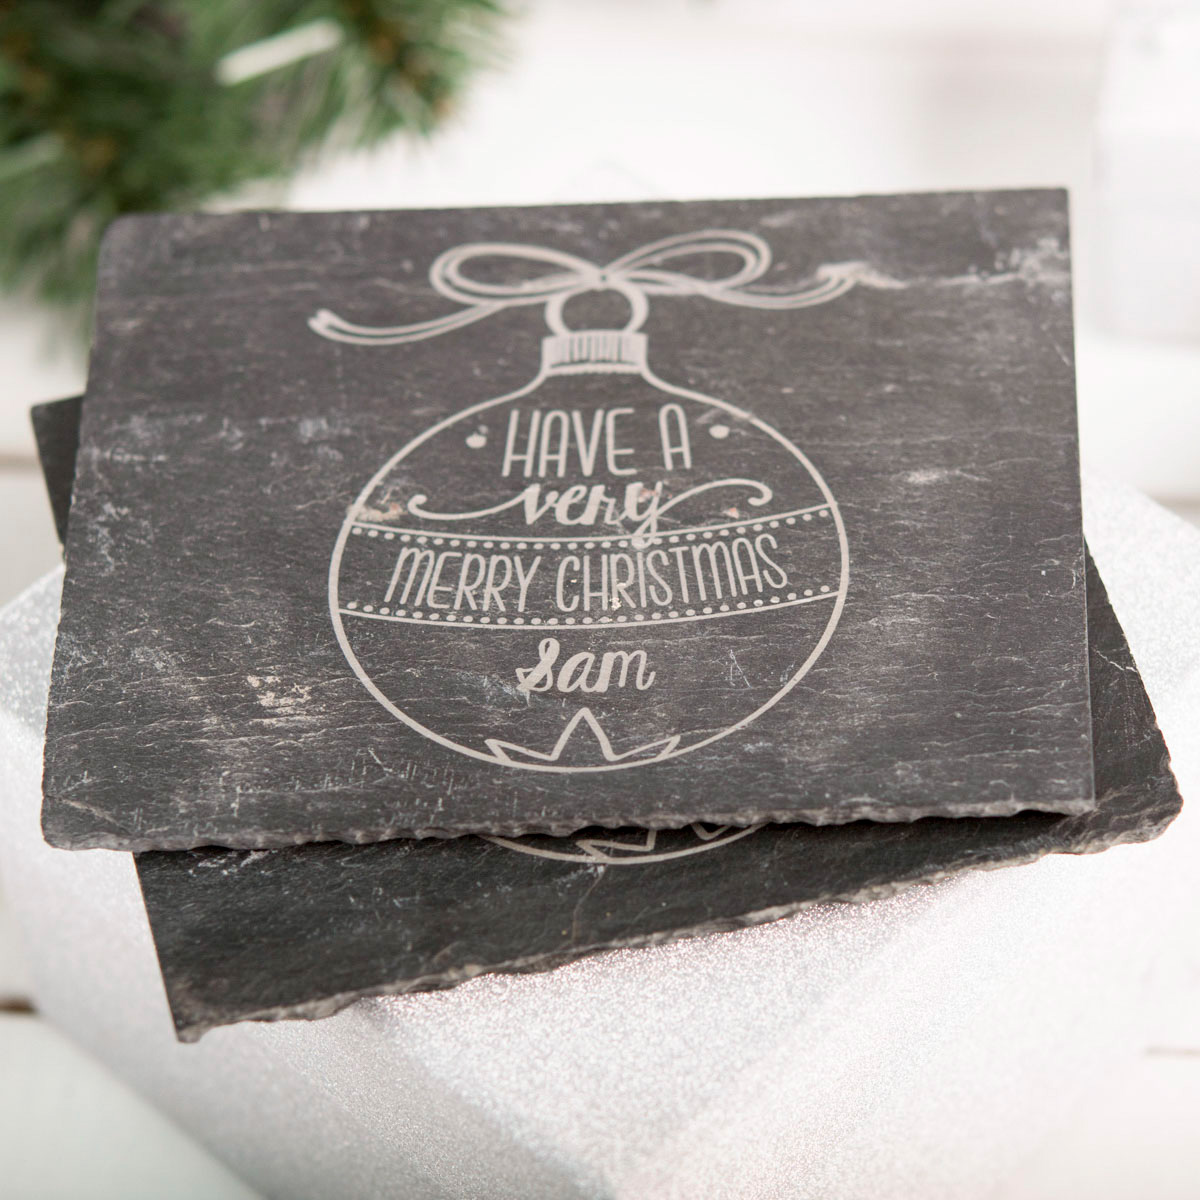 Personalised Set Of 2 Slate Coasters - Have A Very Merry Christmas